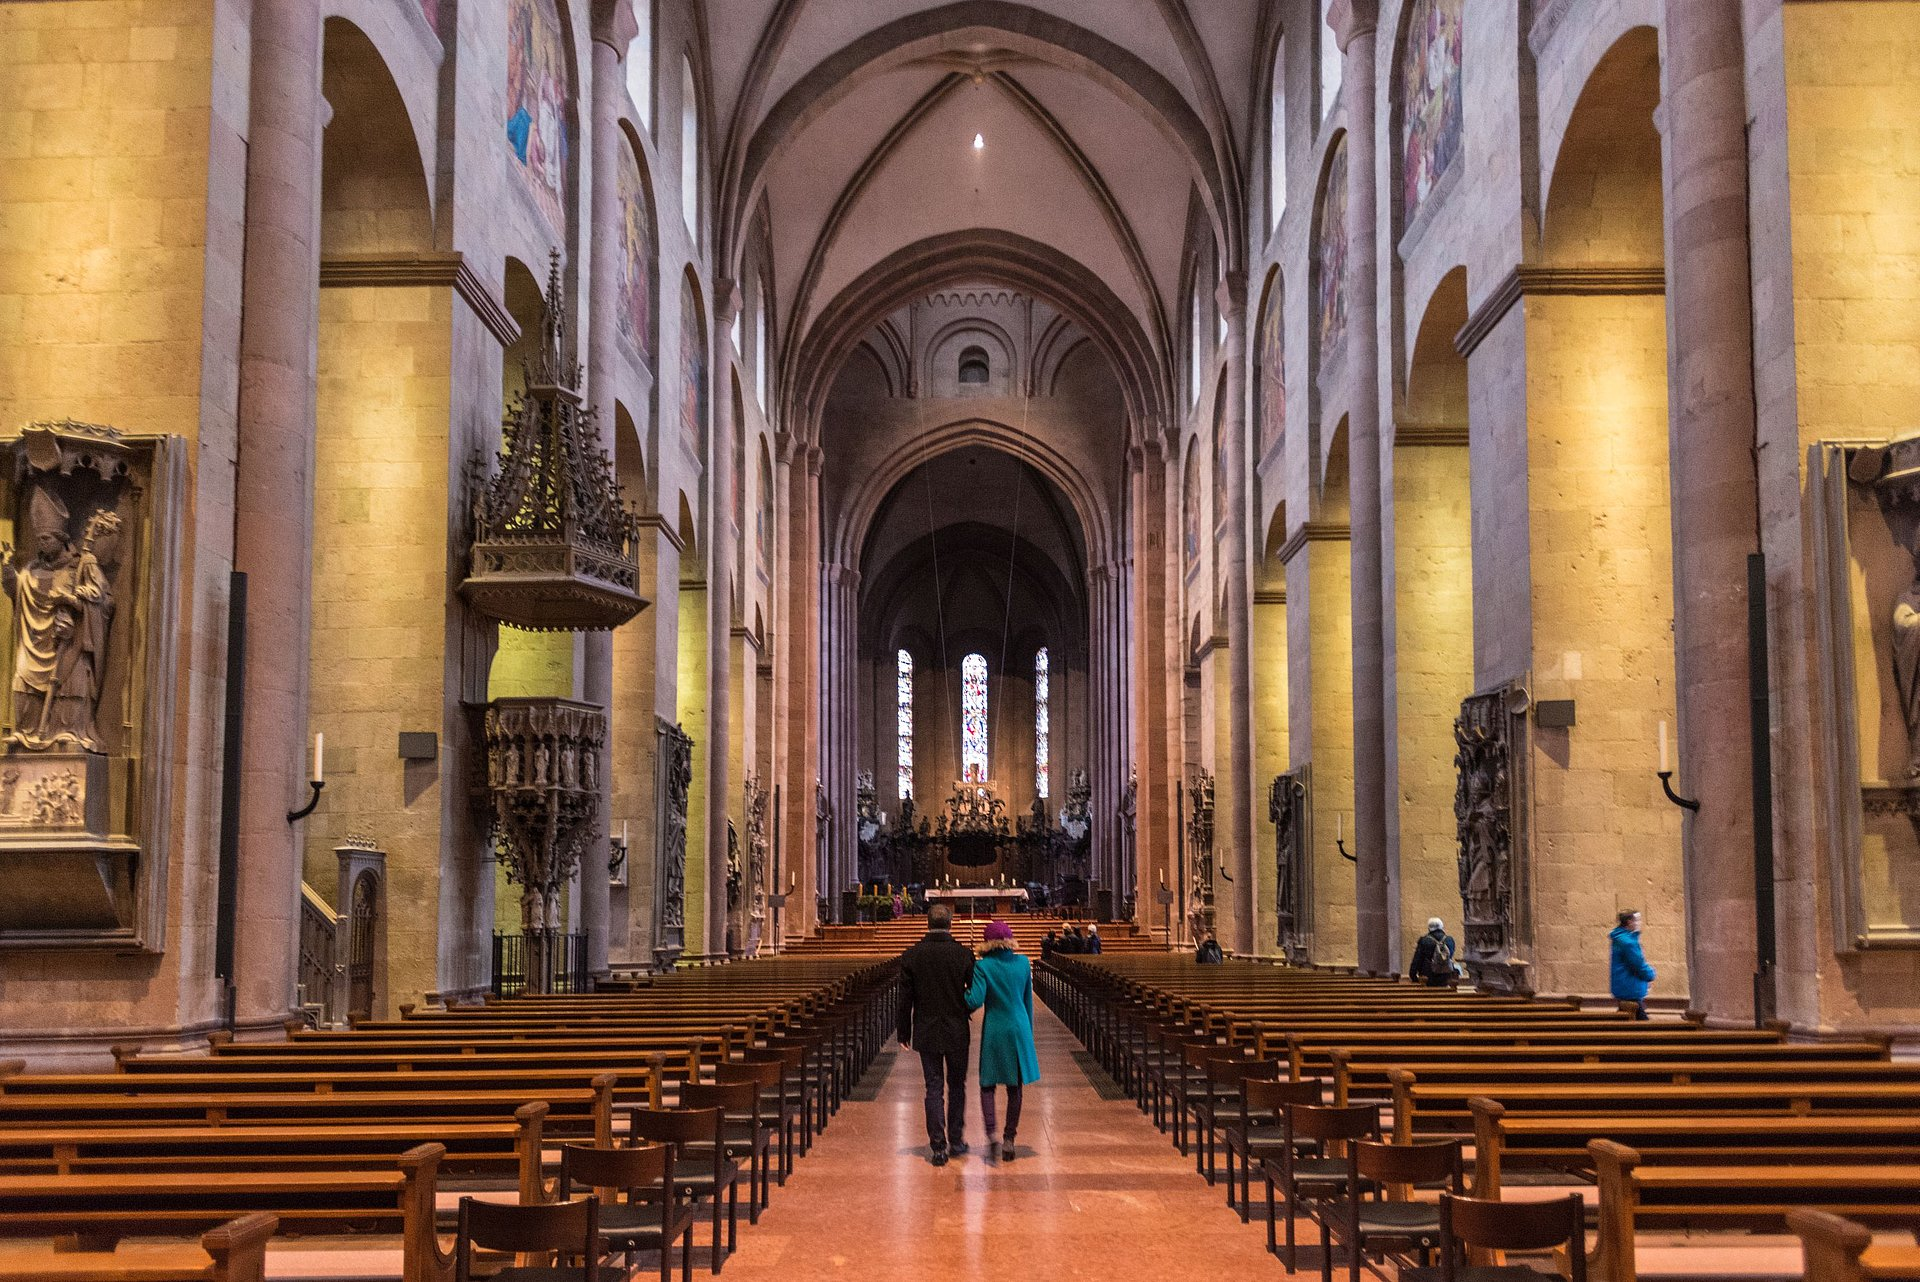 Interior of the cathedral in Mainz, Rhine-Hesse